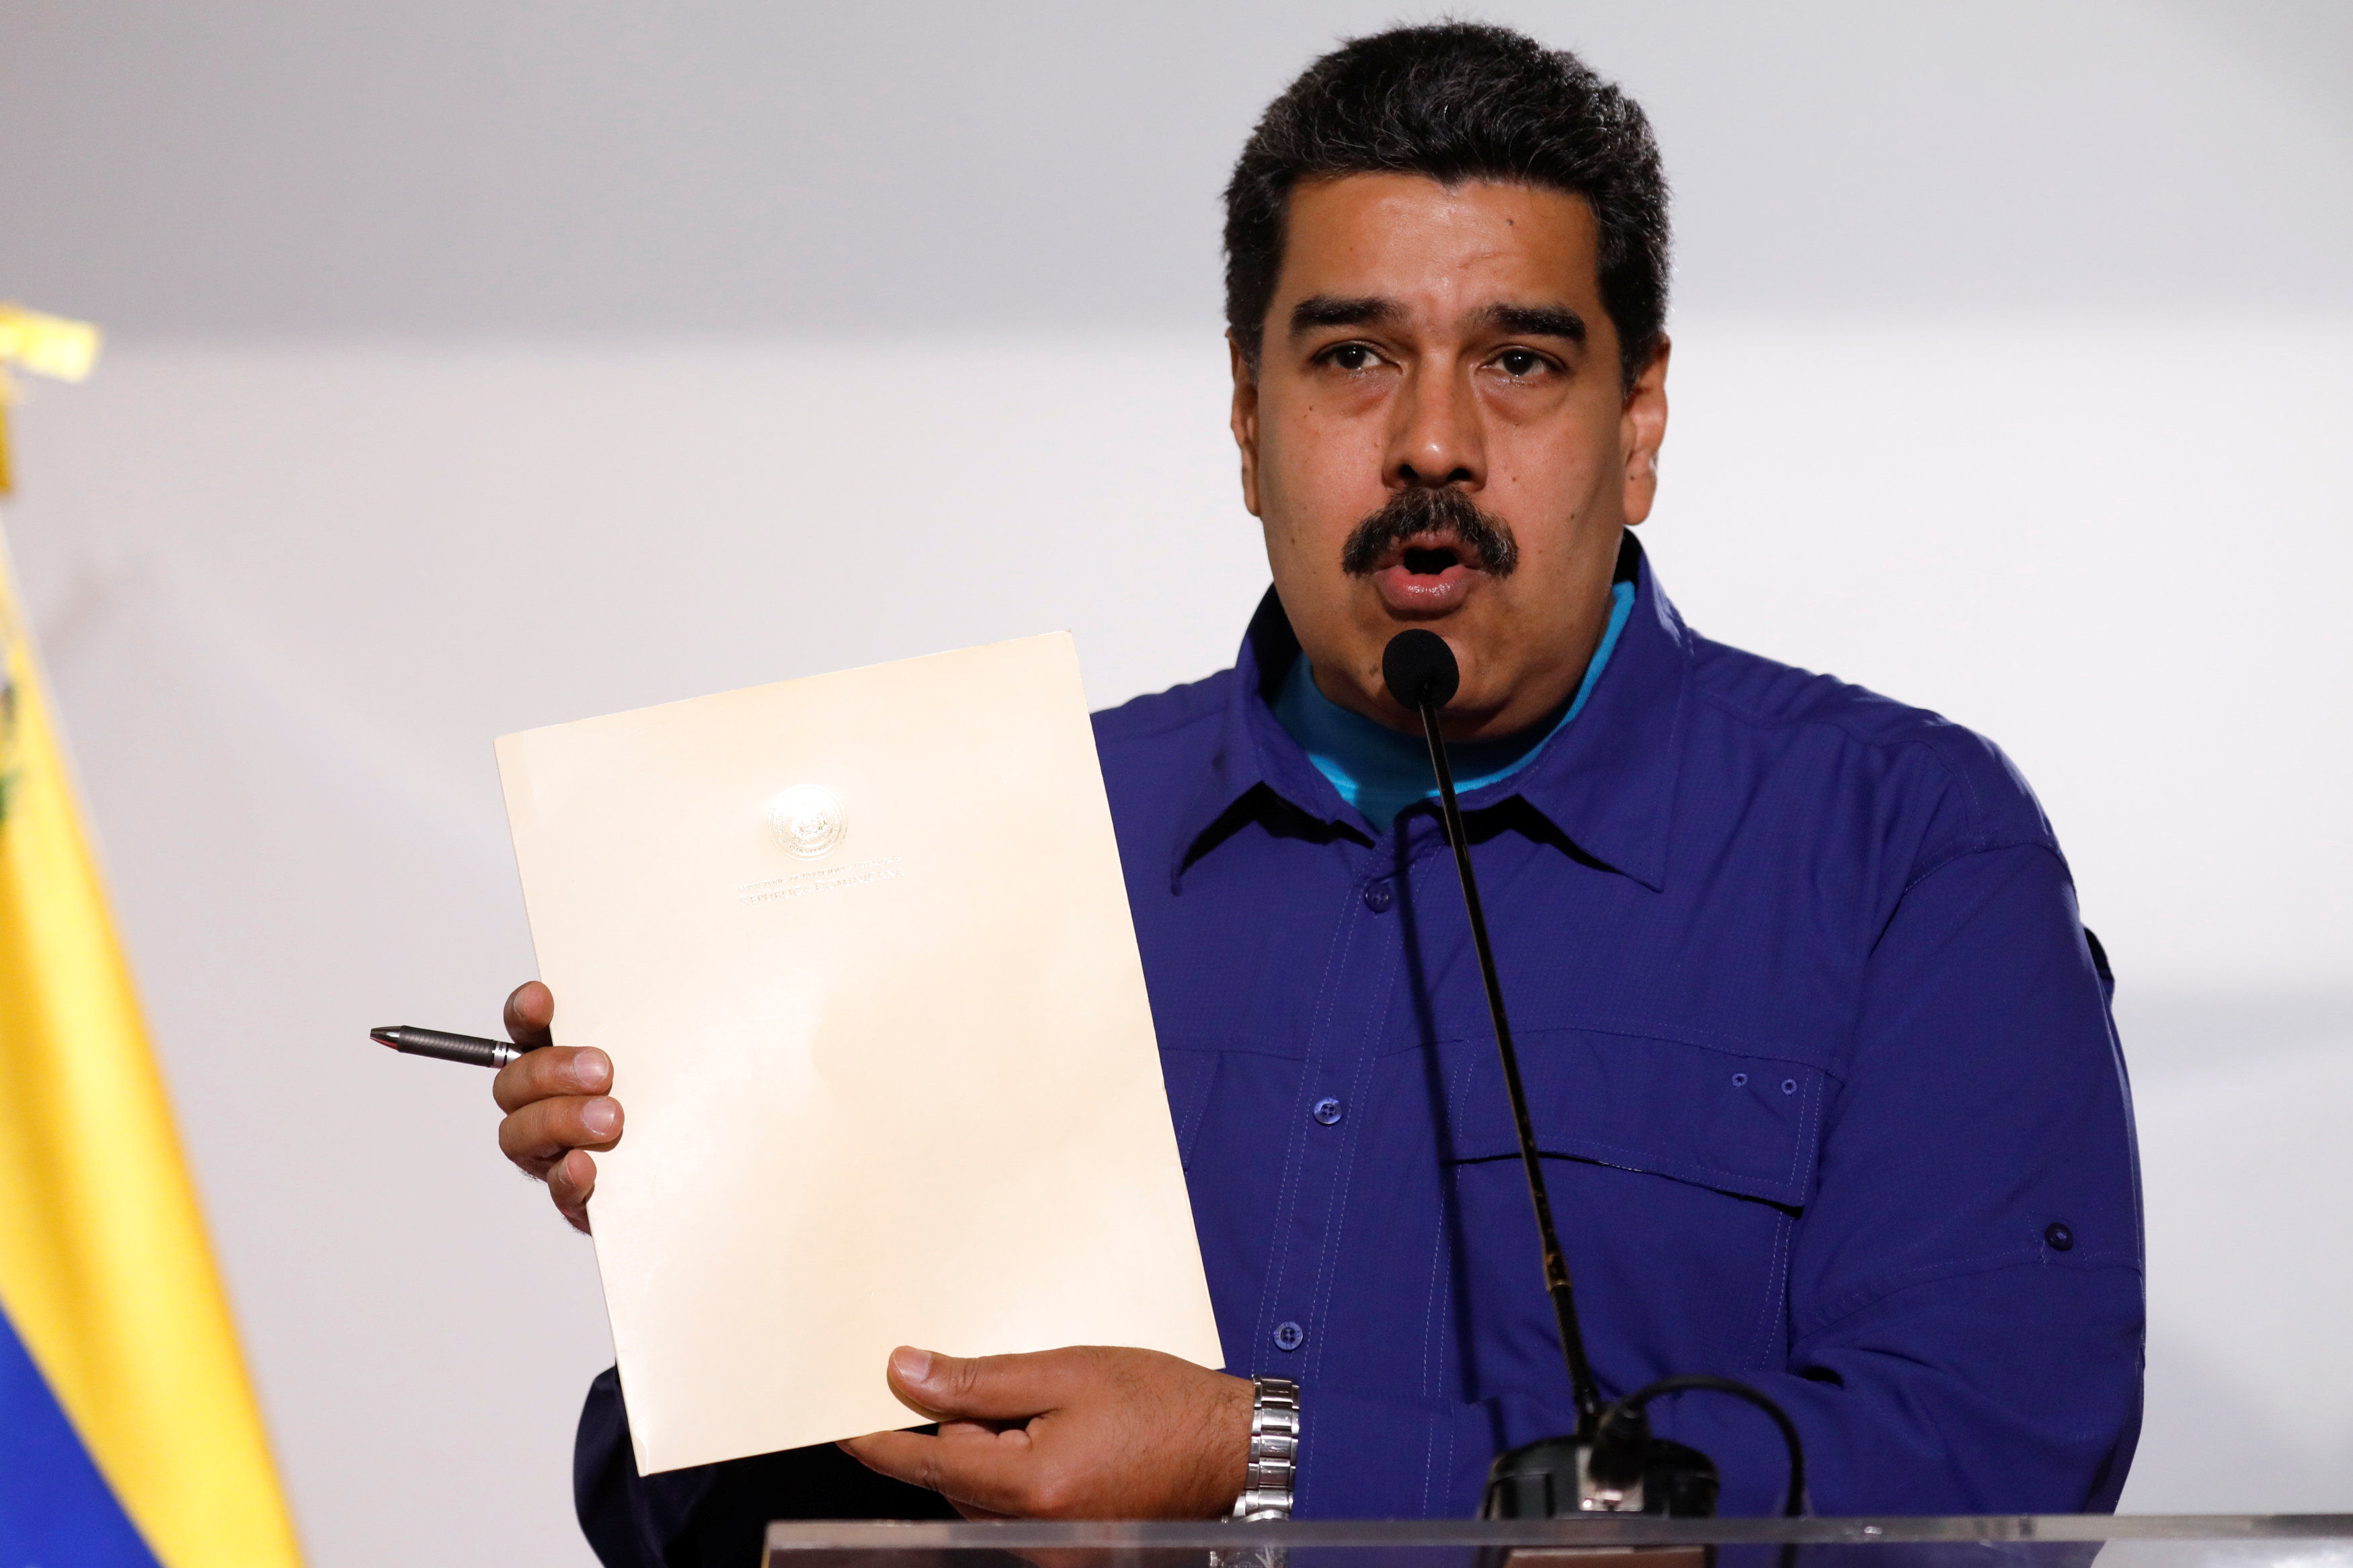 Venezuela's President Nicolas Maduro holds a document as he talks to the media before an event with supporters of Somos Venezuela (We are Venezuela) movement in Caracas, Venezuela February 7, 2018.